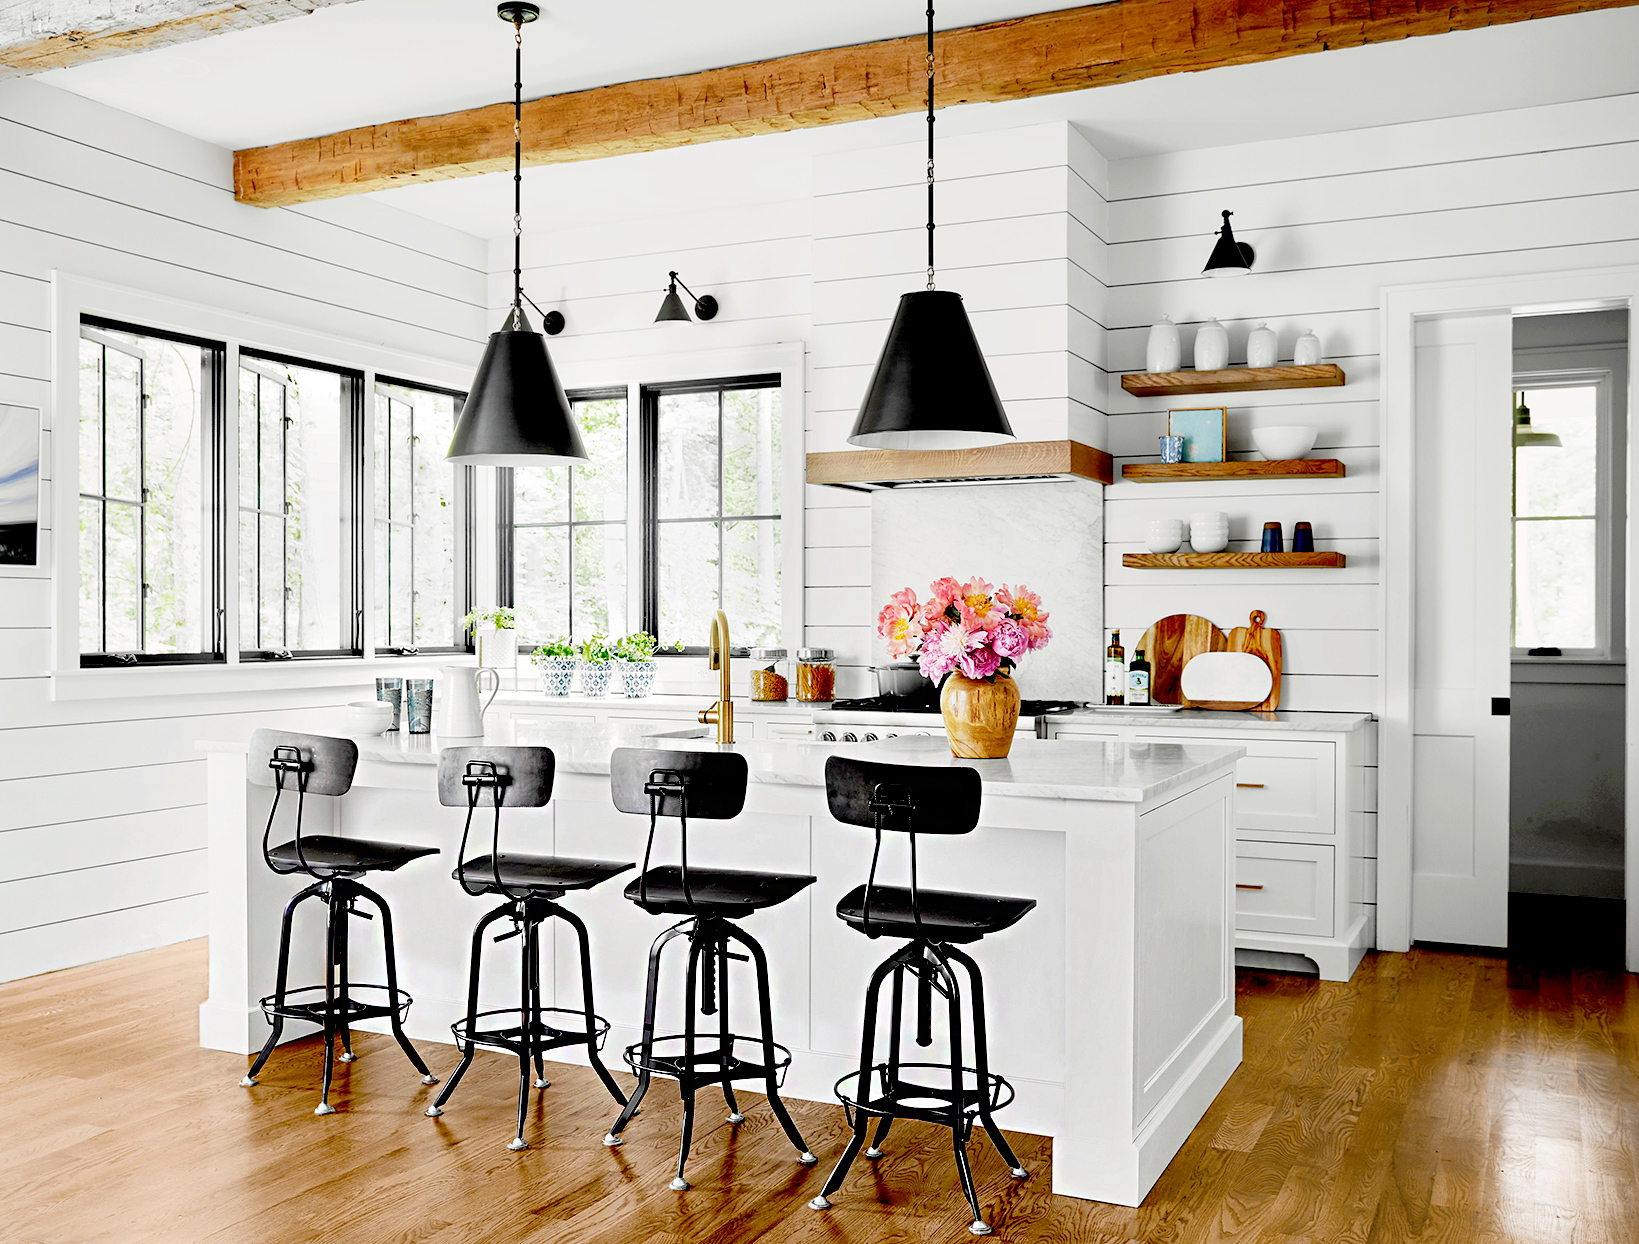 White kitchen with island and black stools